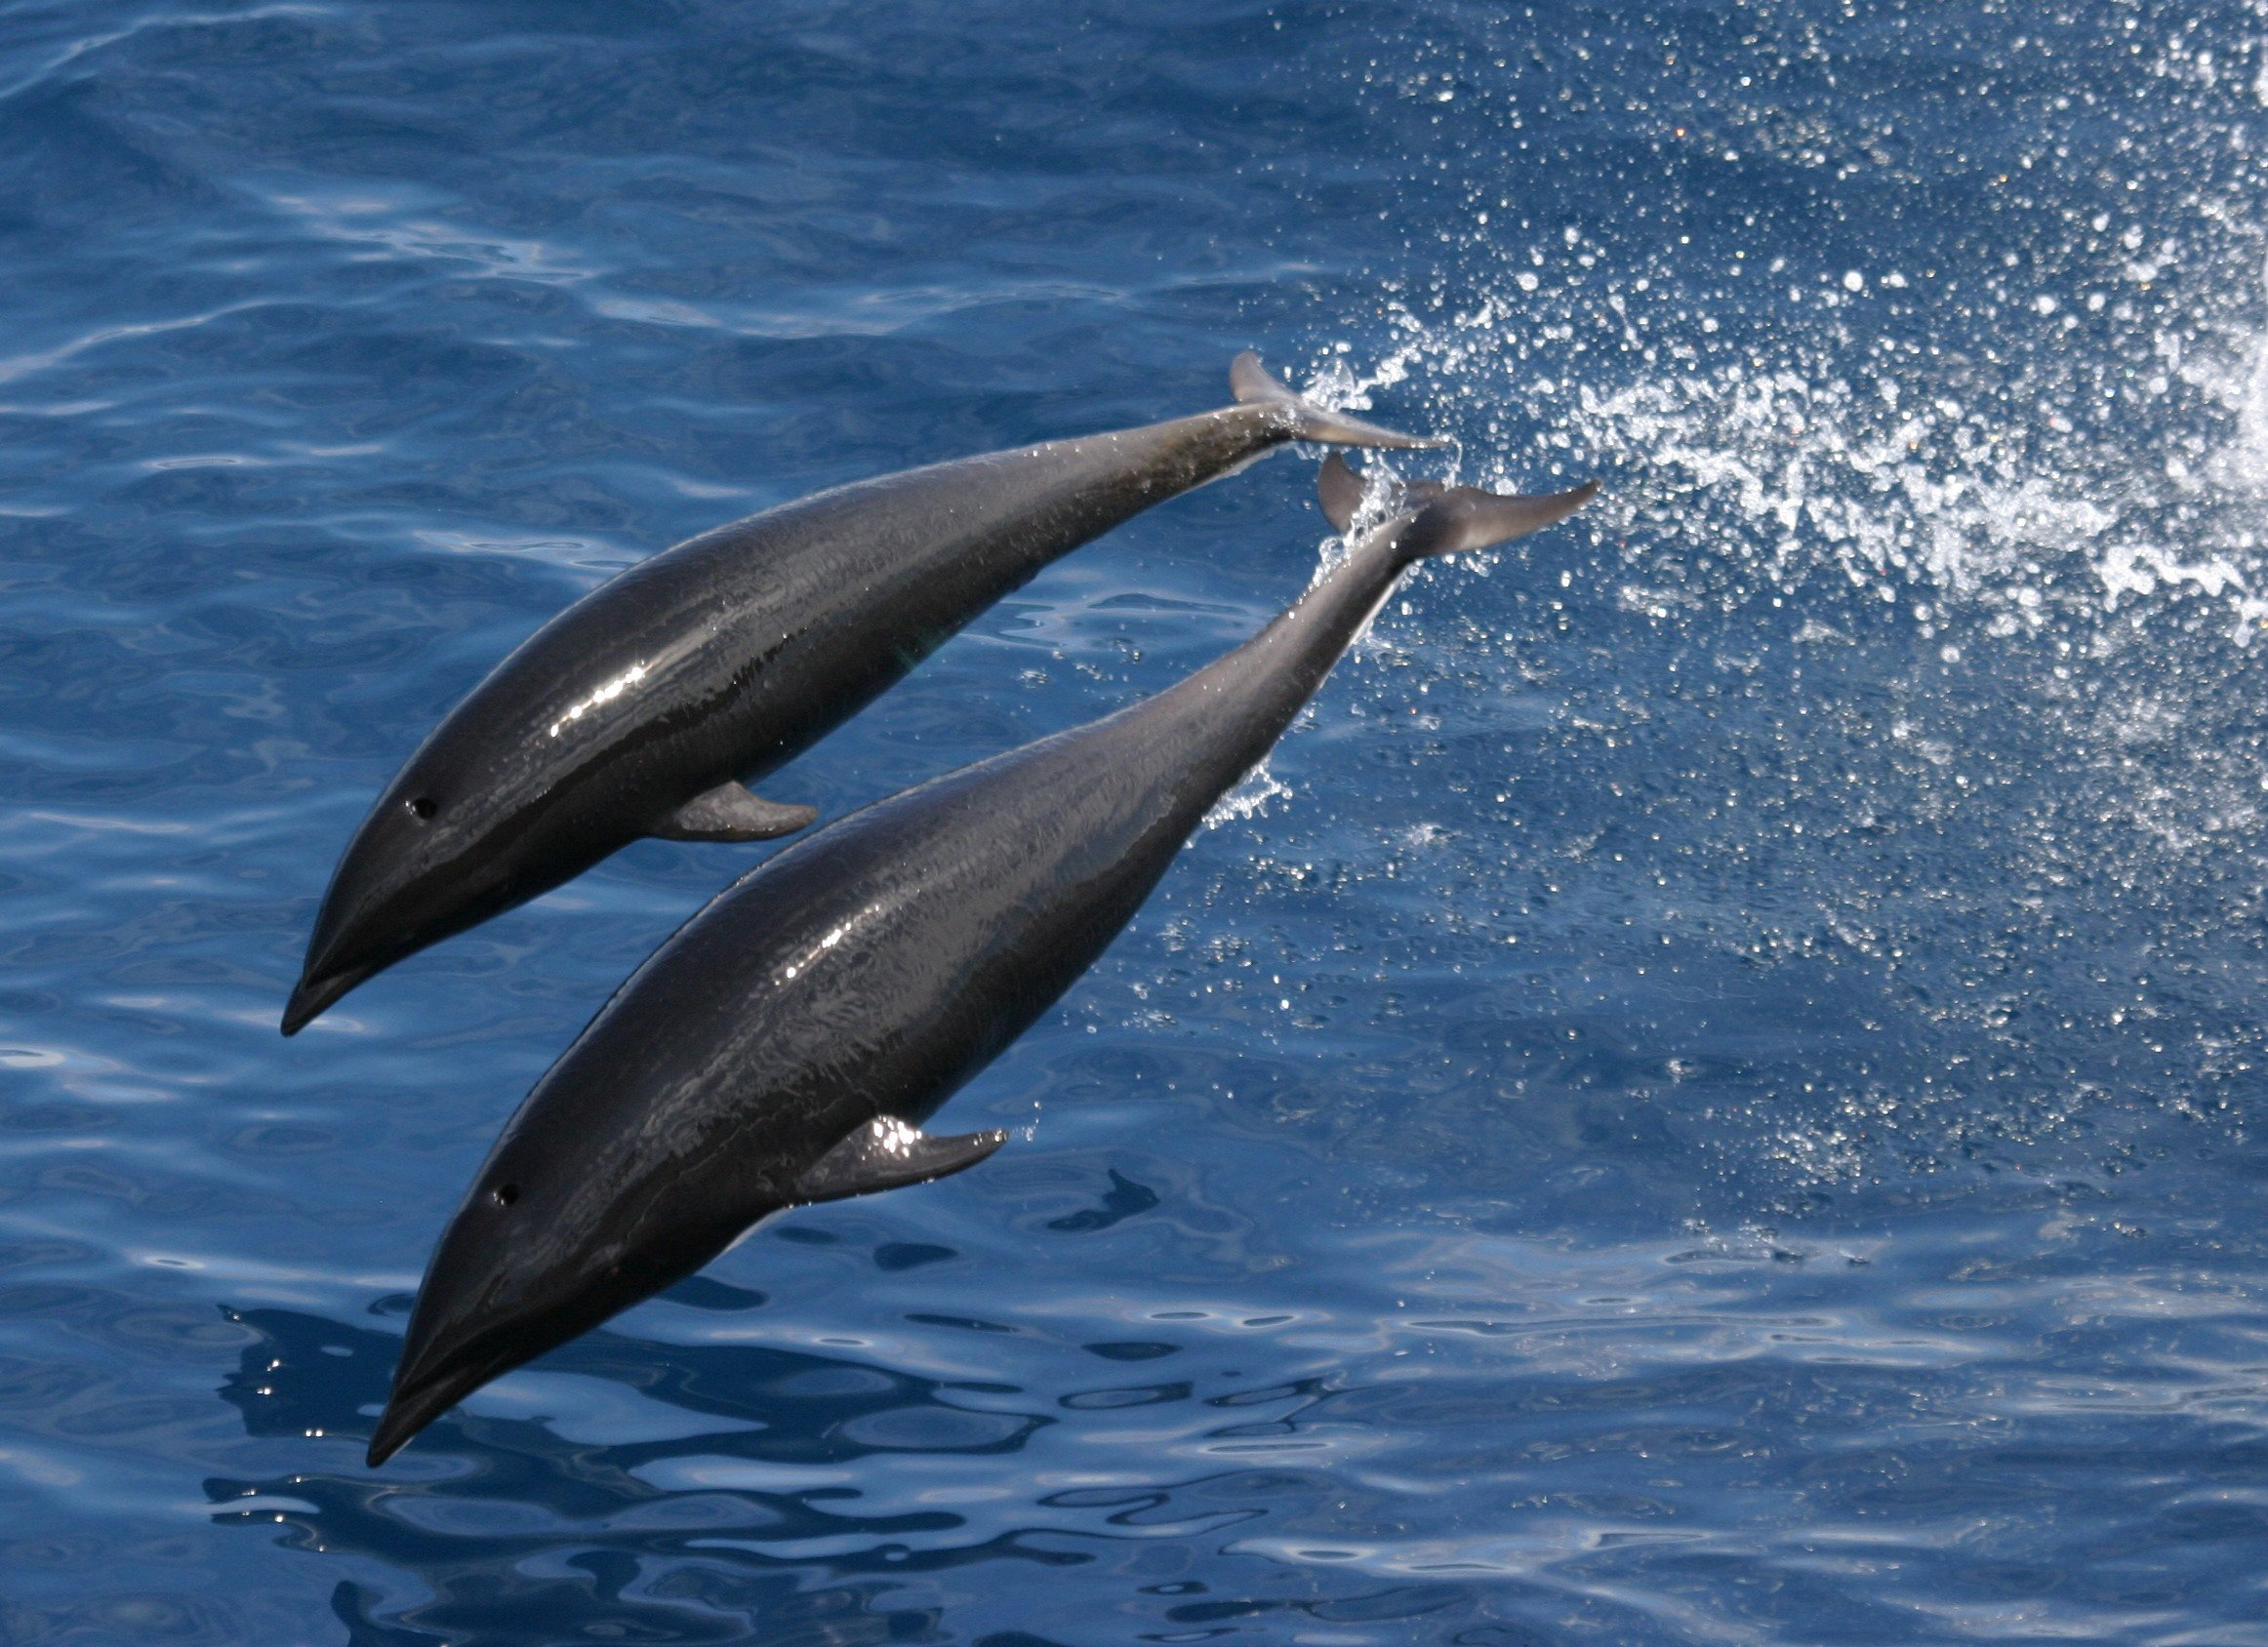 Image of Northern Right Whale Dolphin